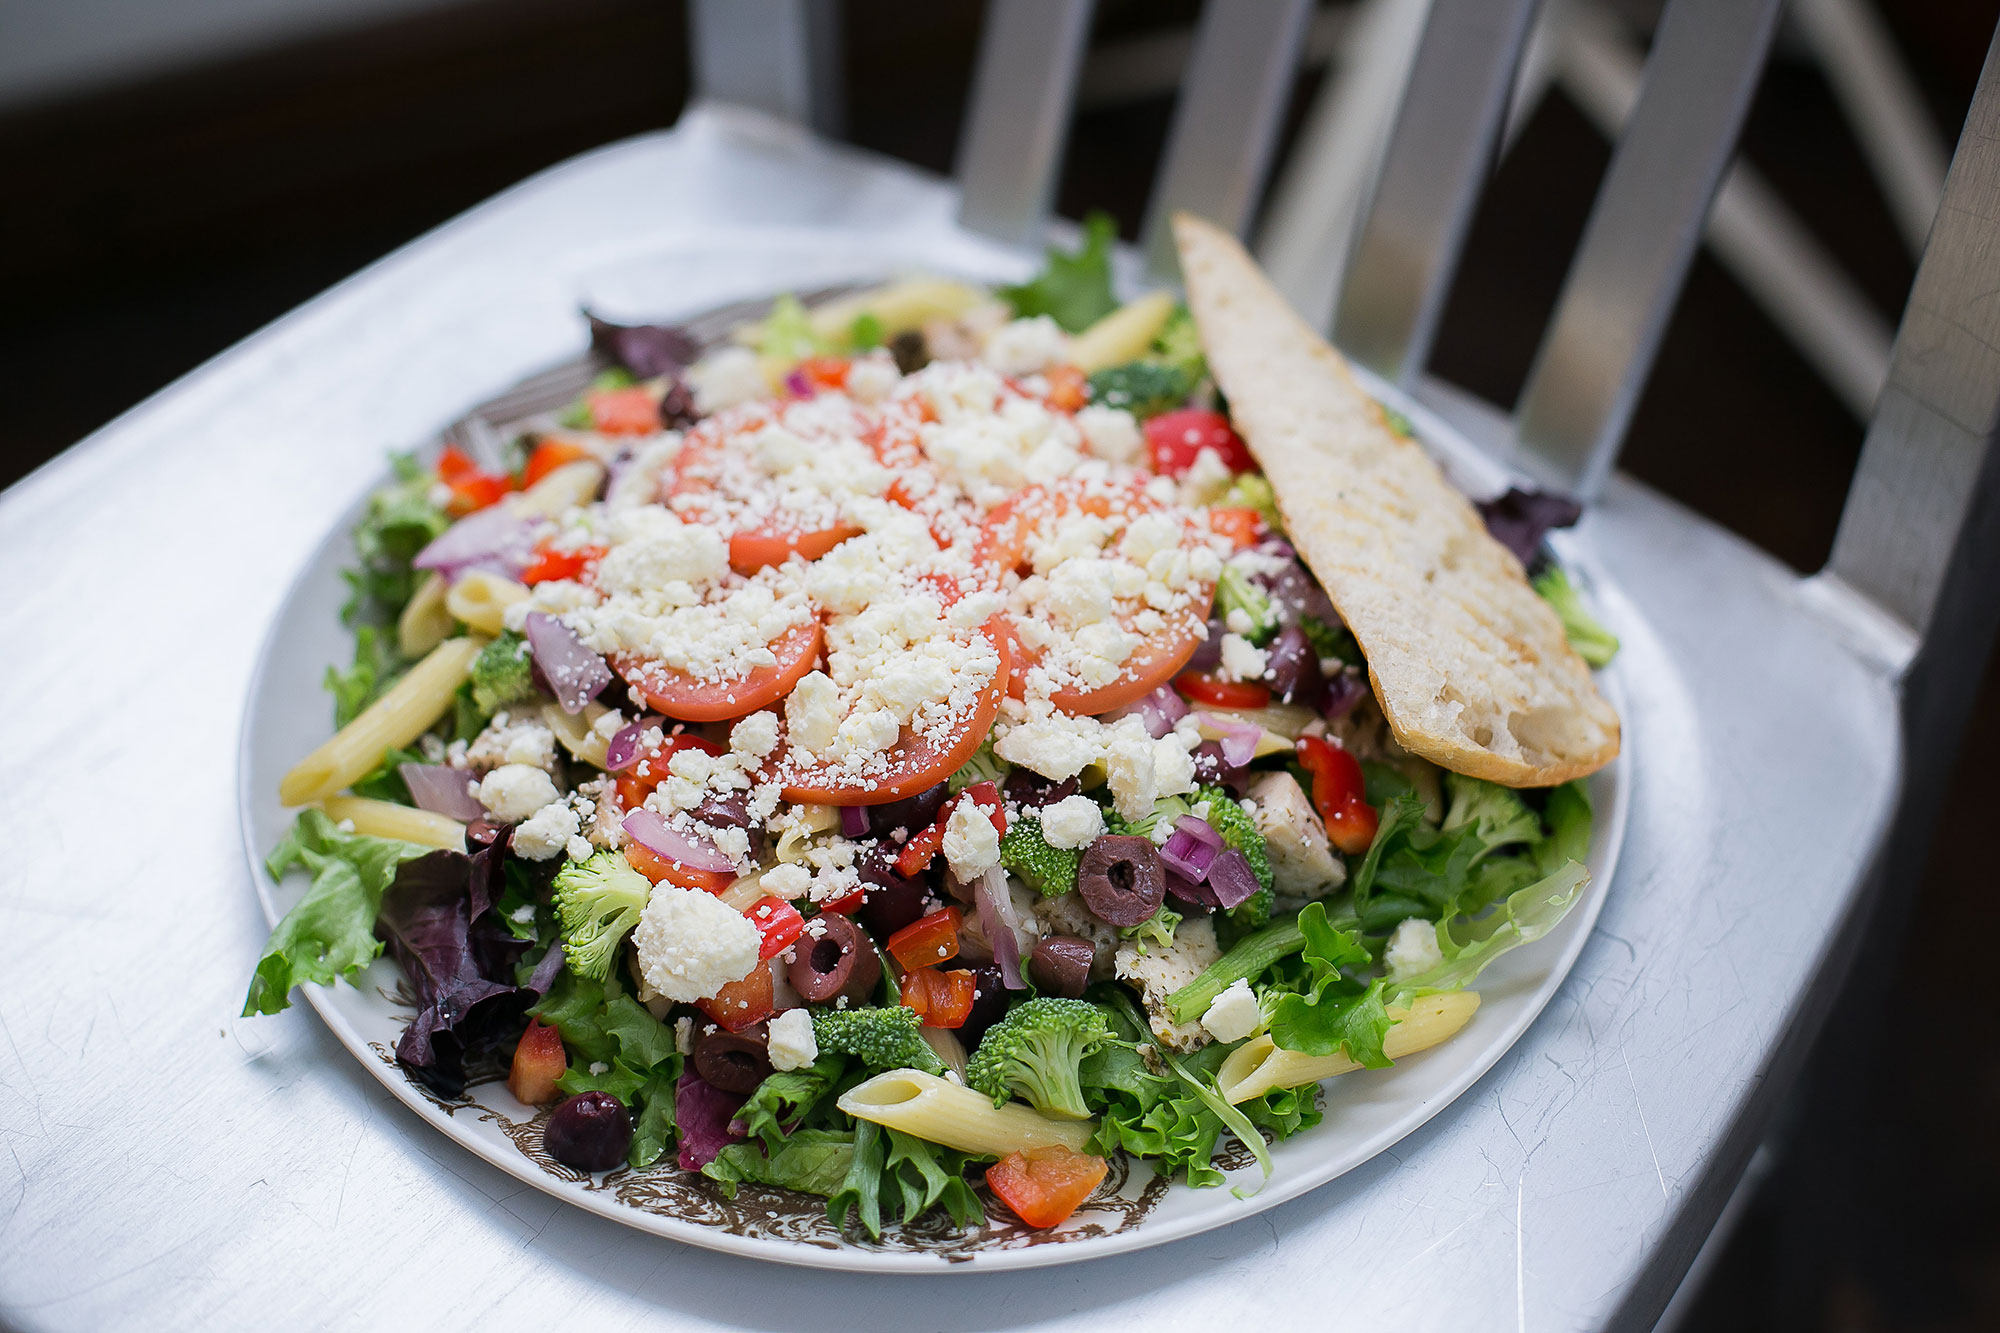 Seasoned chicken breast, tomatoes, red peppers, brocolli, red onions, penne pasta, kalamata olives, feta cheese, vinaigrette dressing